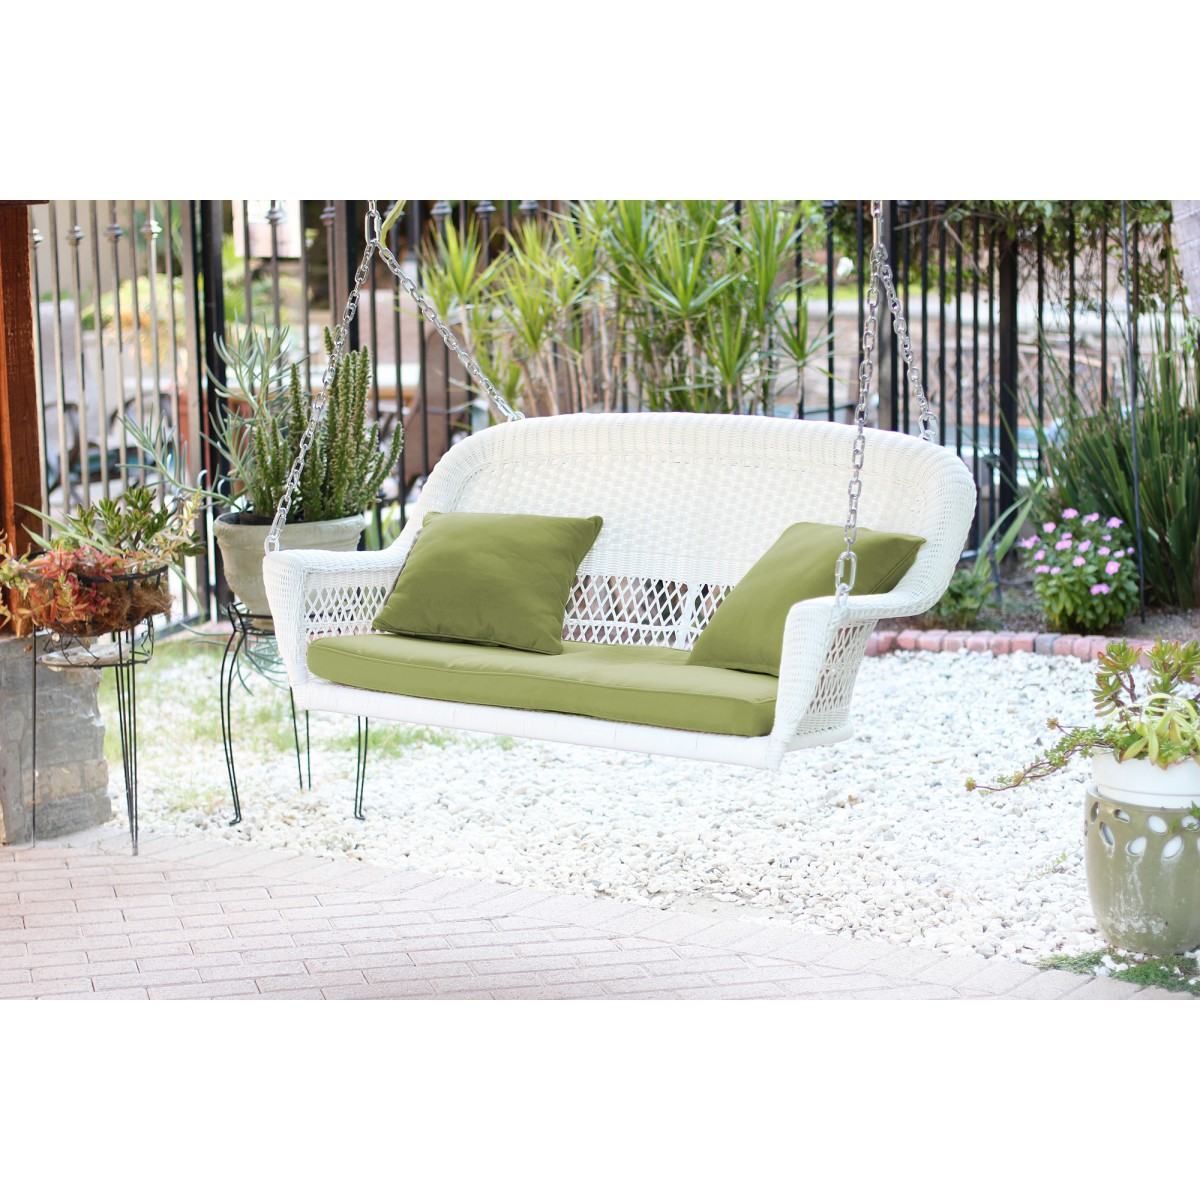 Brilliant Wicker Outdoor Patio Loveseat Paula Deen Outdoor Dogwood Pdpeps Interior Chair Design Pdpepsorg